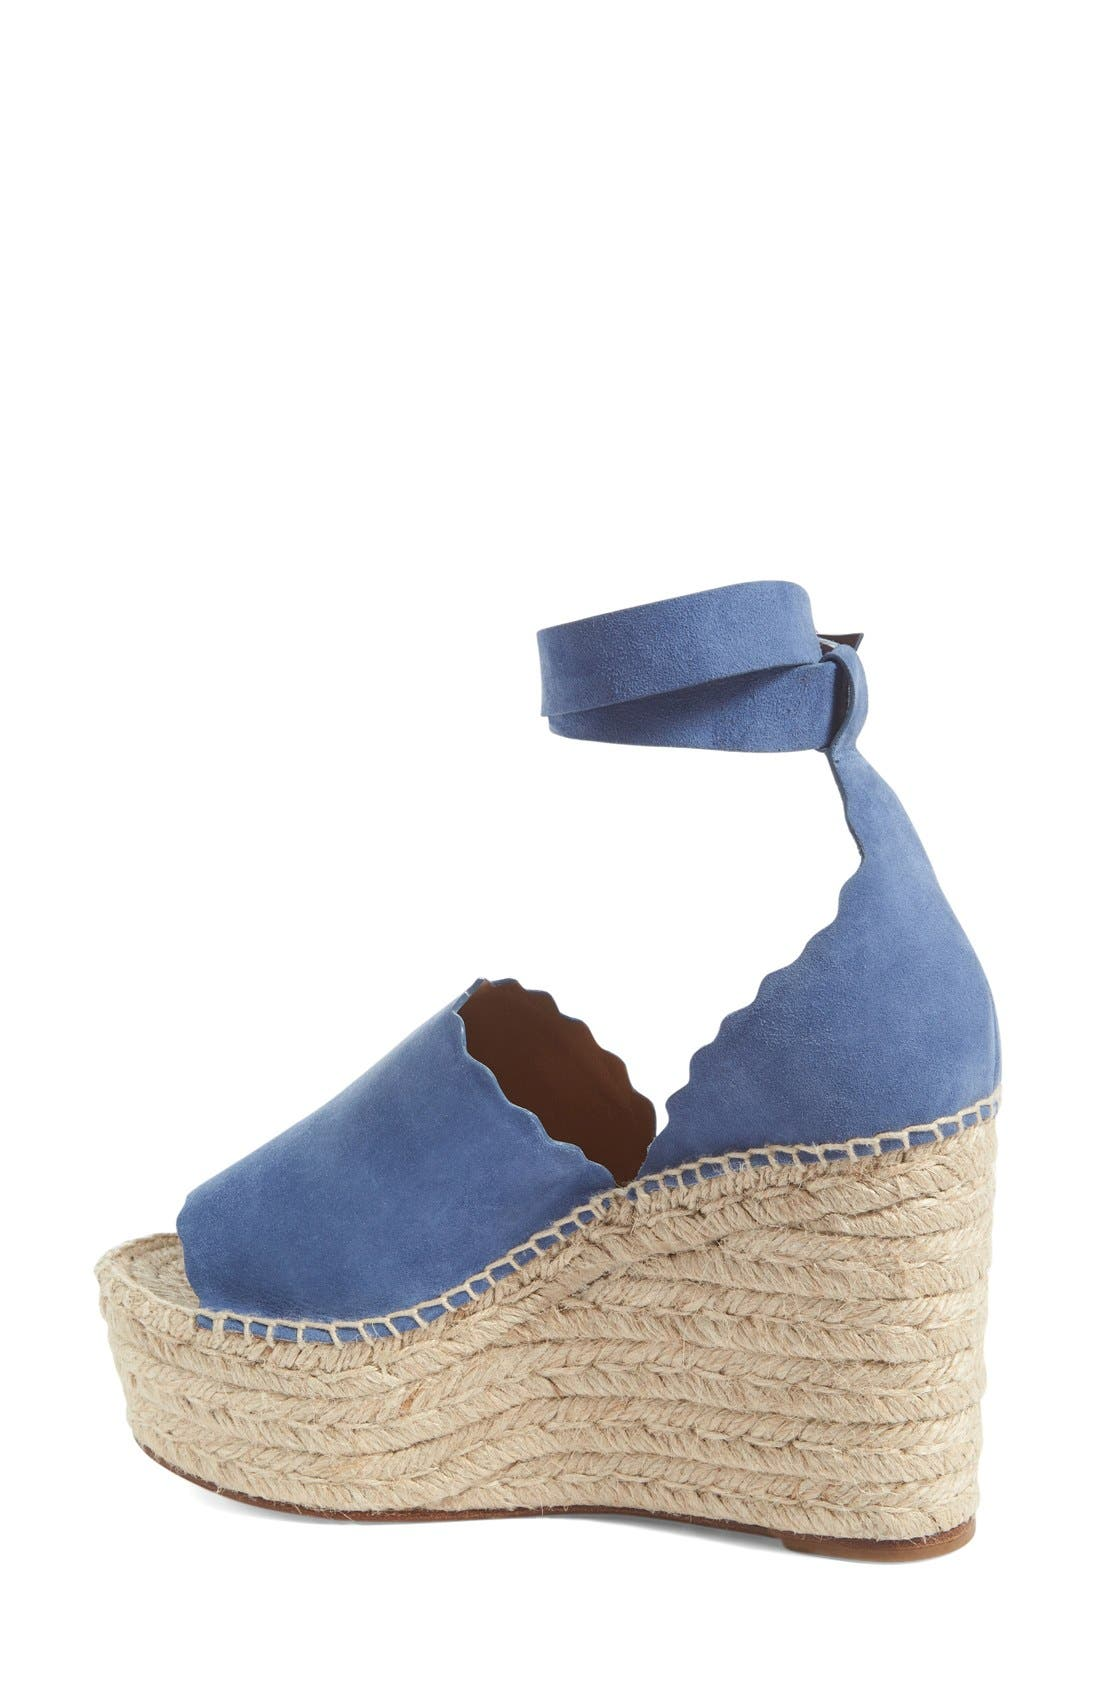 Lauren Espadrille Wedge Sandal,                             Alternate thumbnail 9, color,